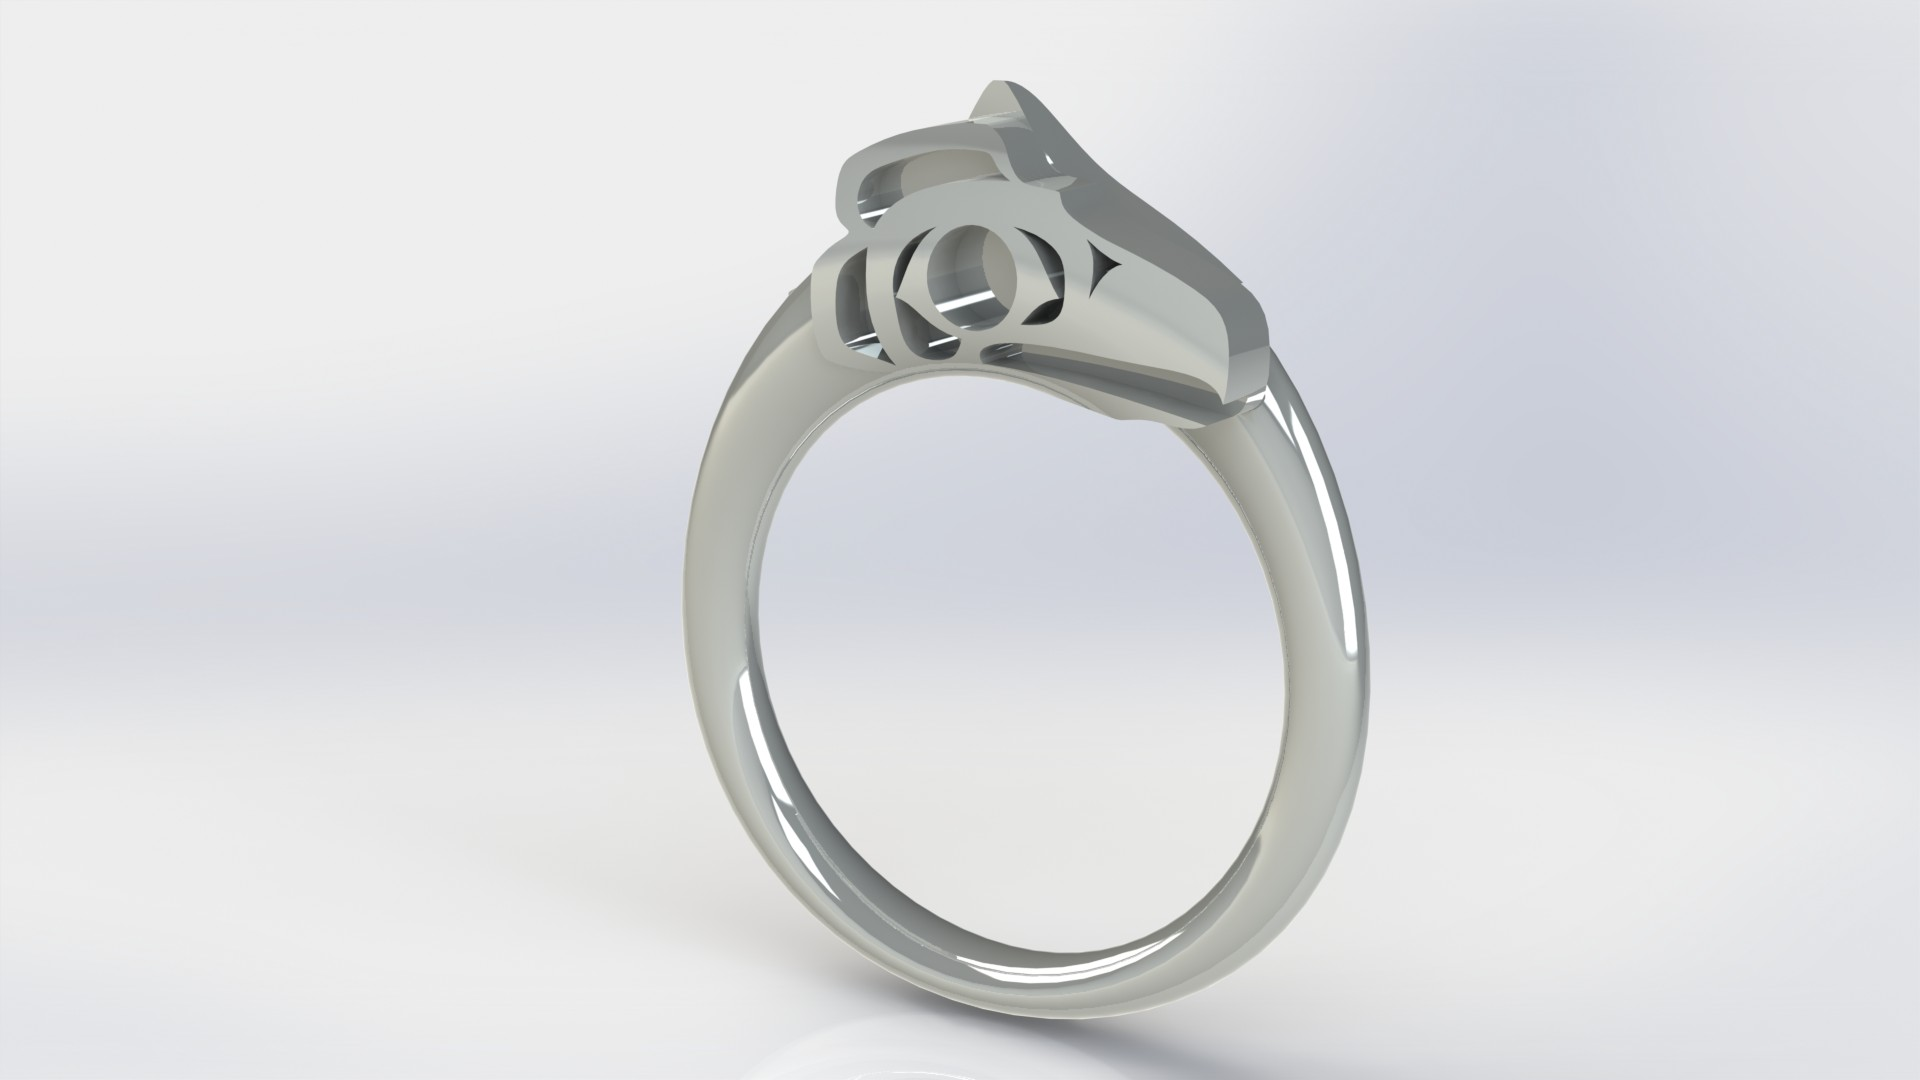 Rendering of custom engagement ring